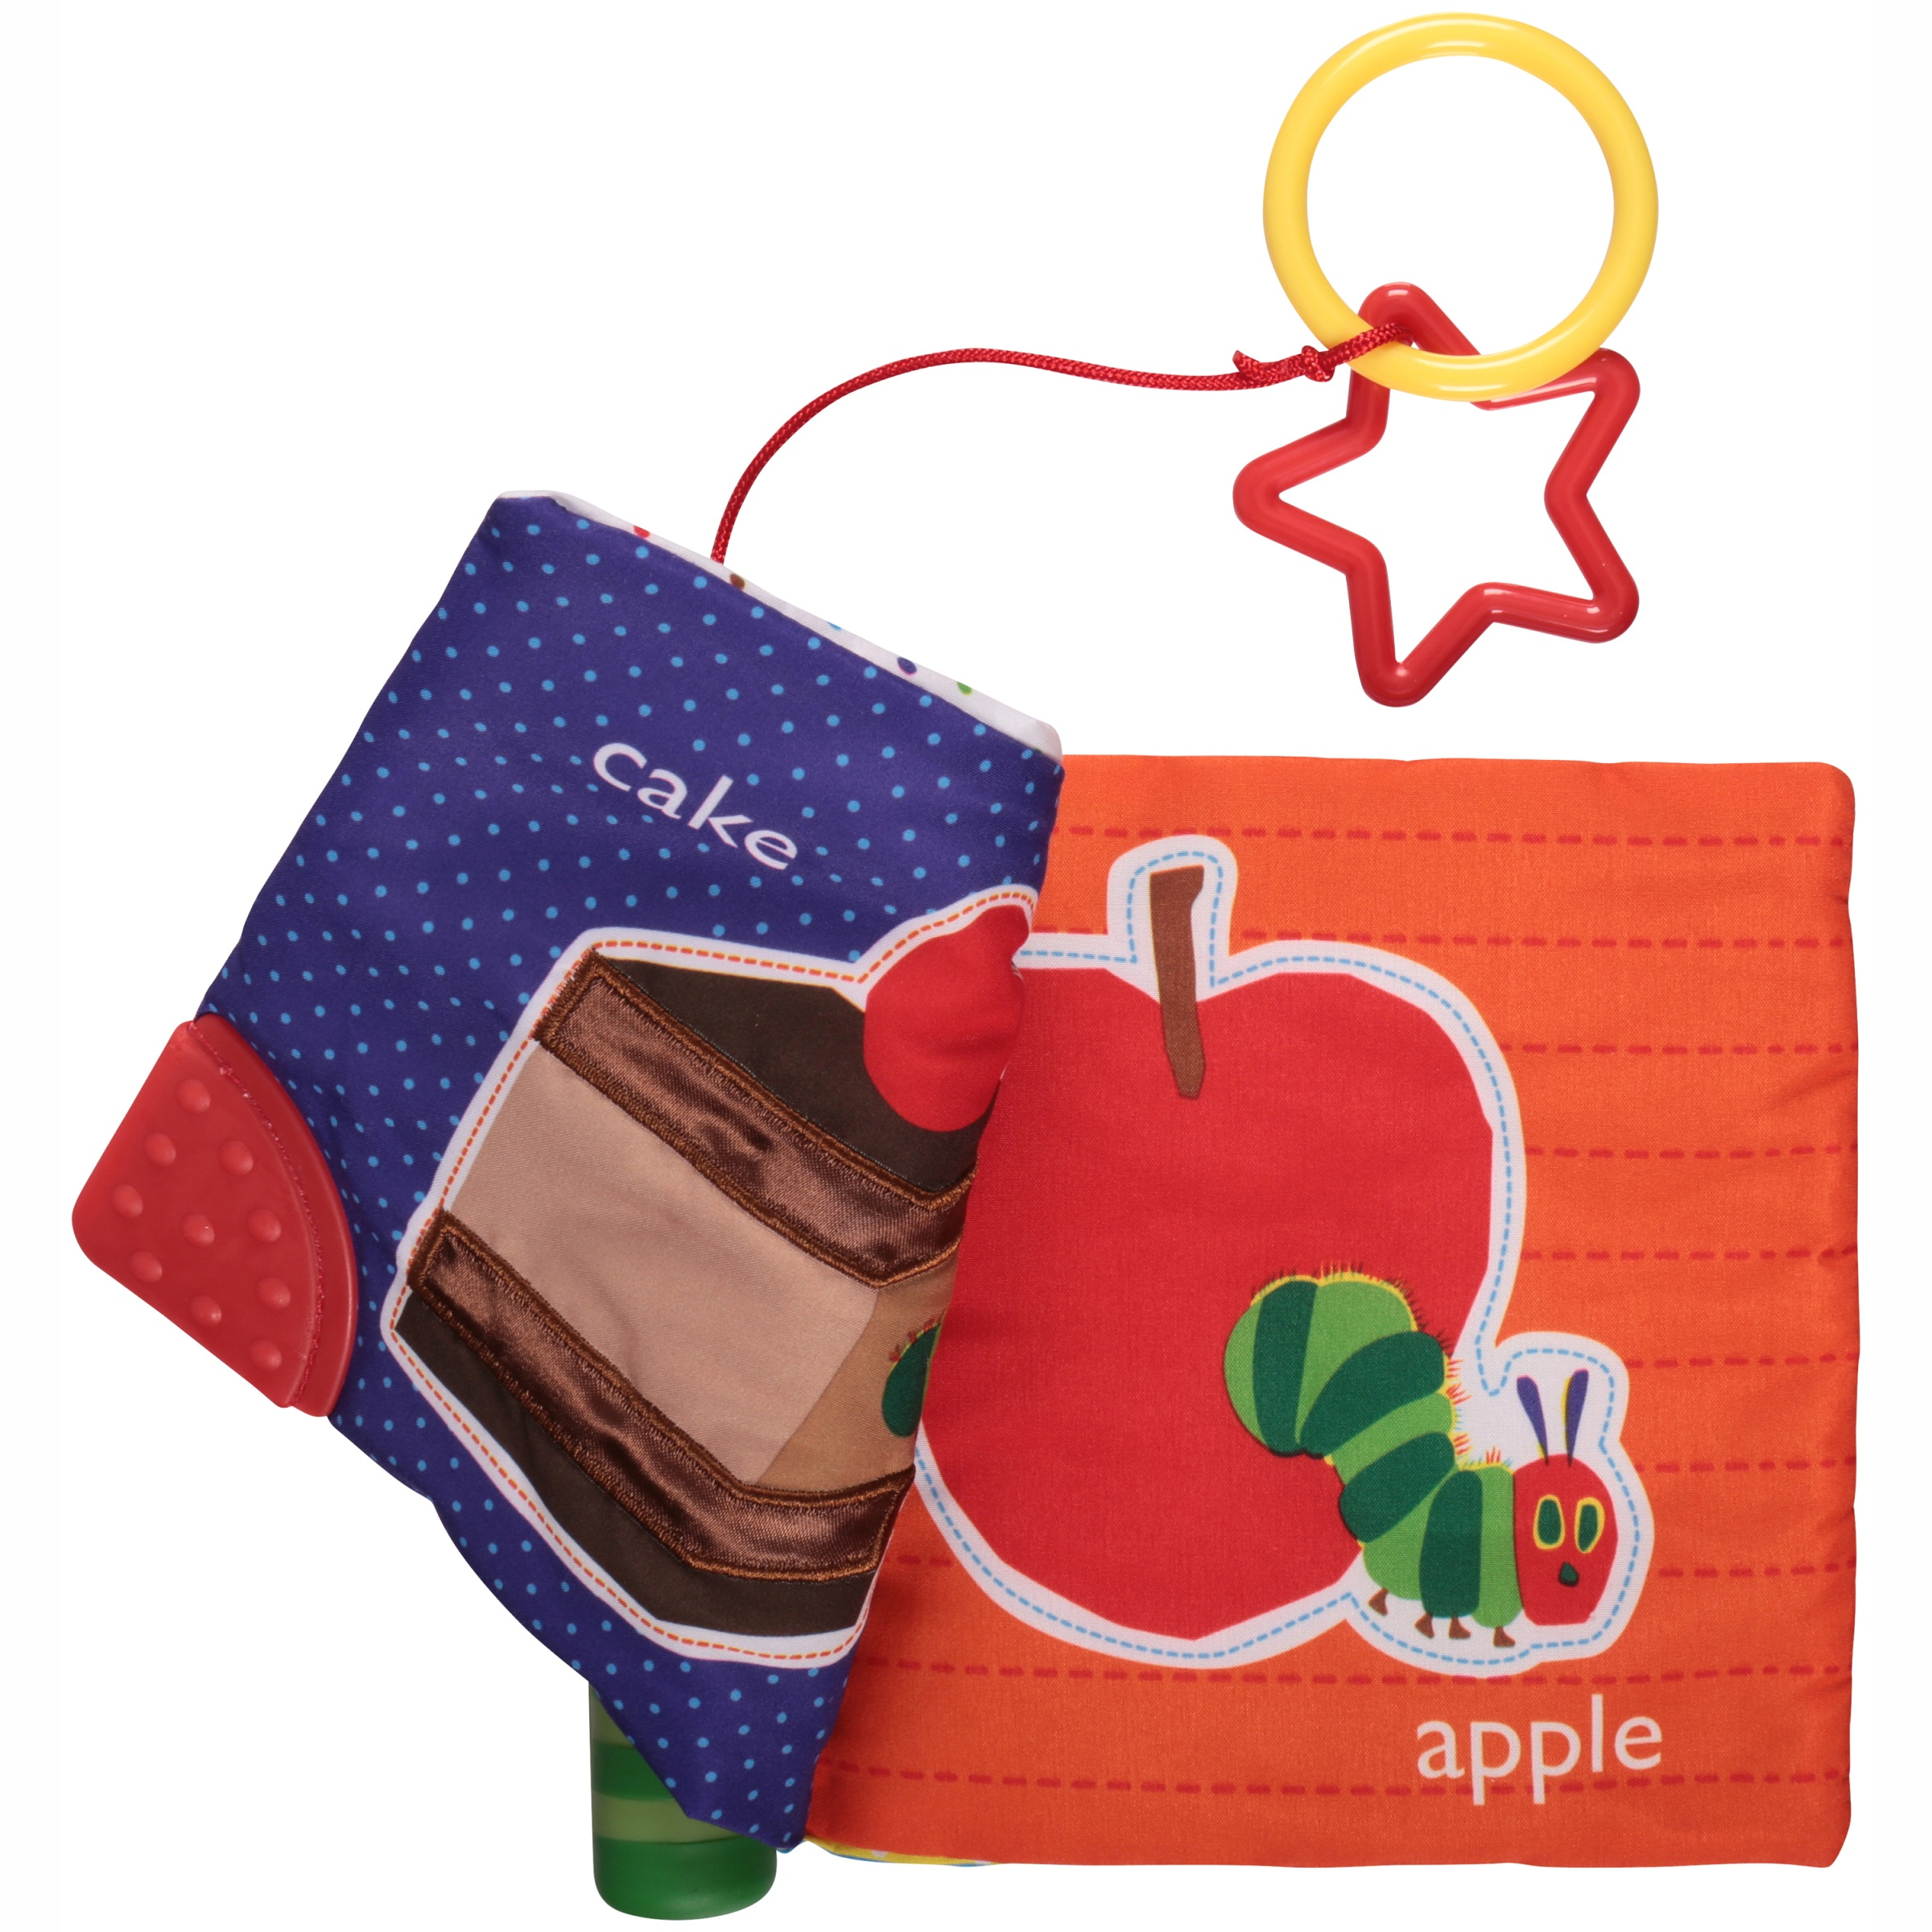 The World of Eric Carle™ The Very Hungry Caterpillar™ Soft Teether Book